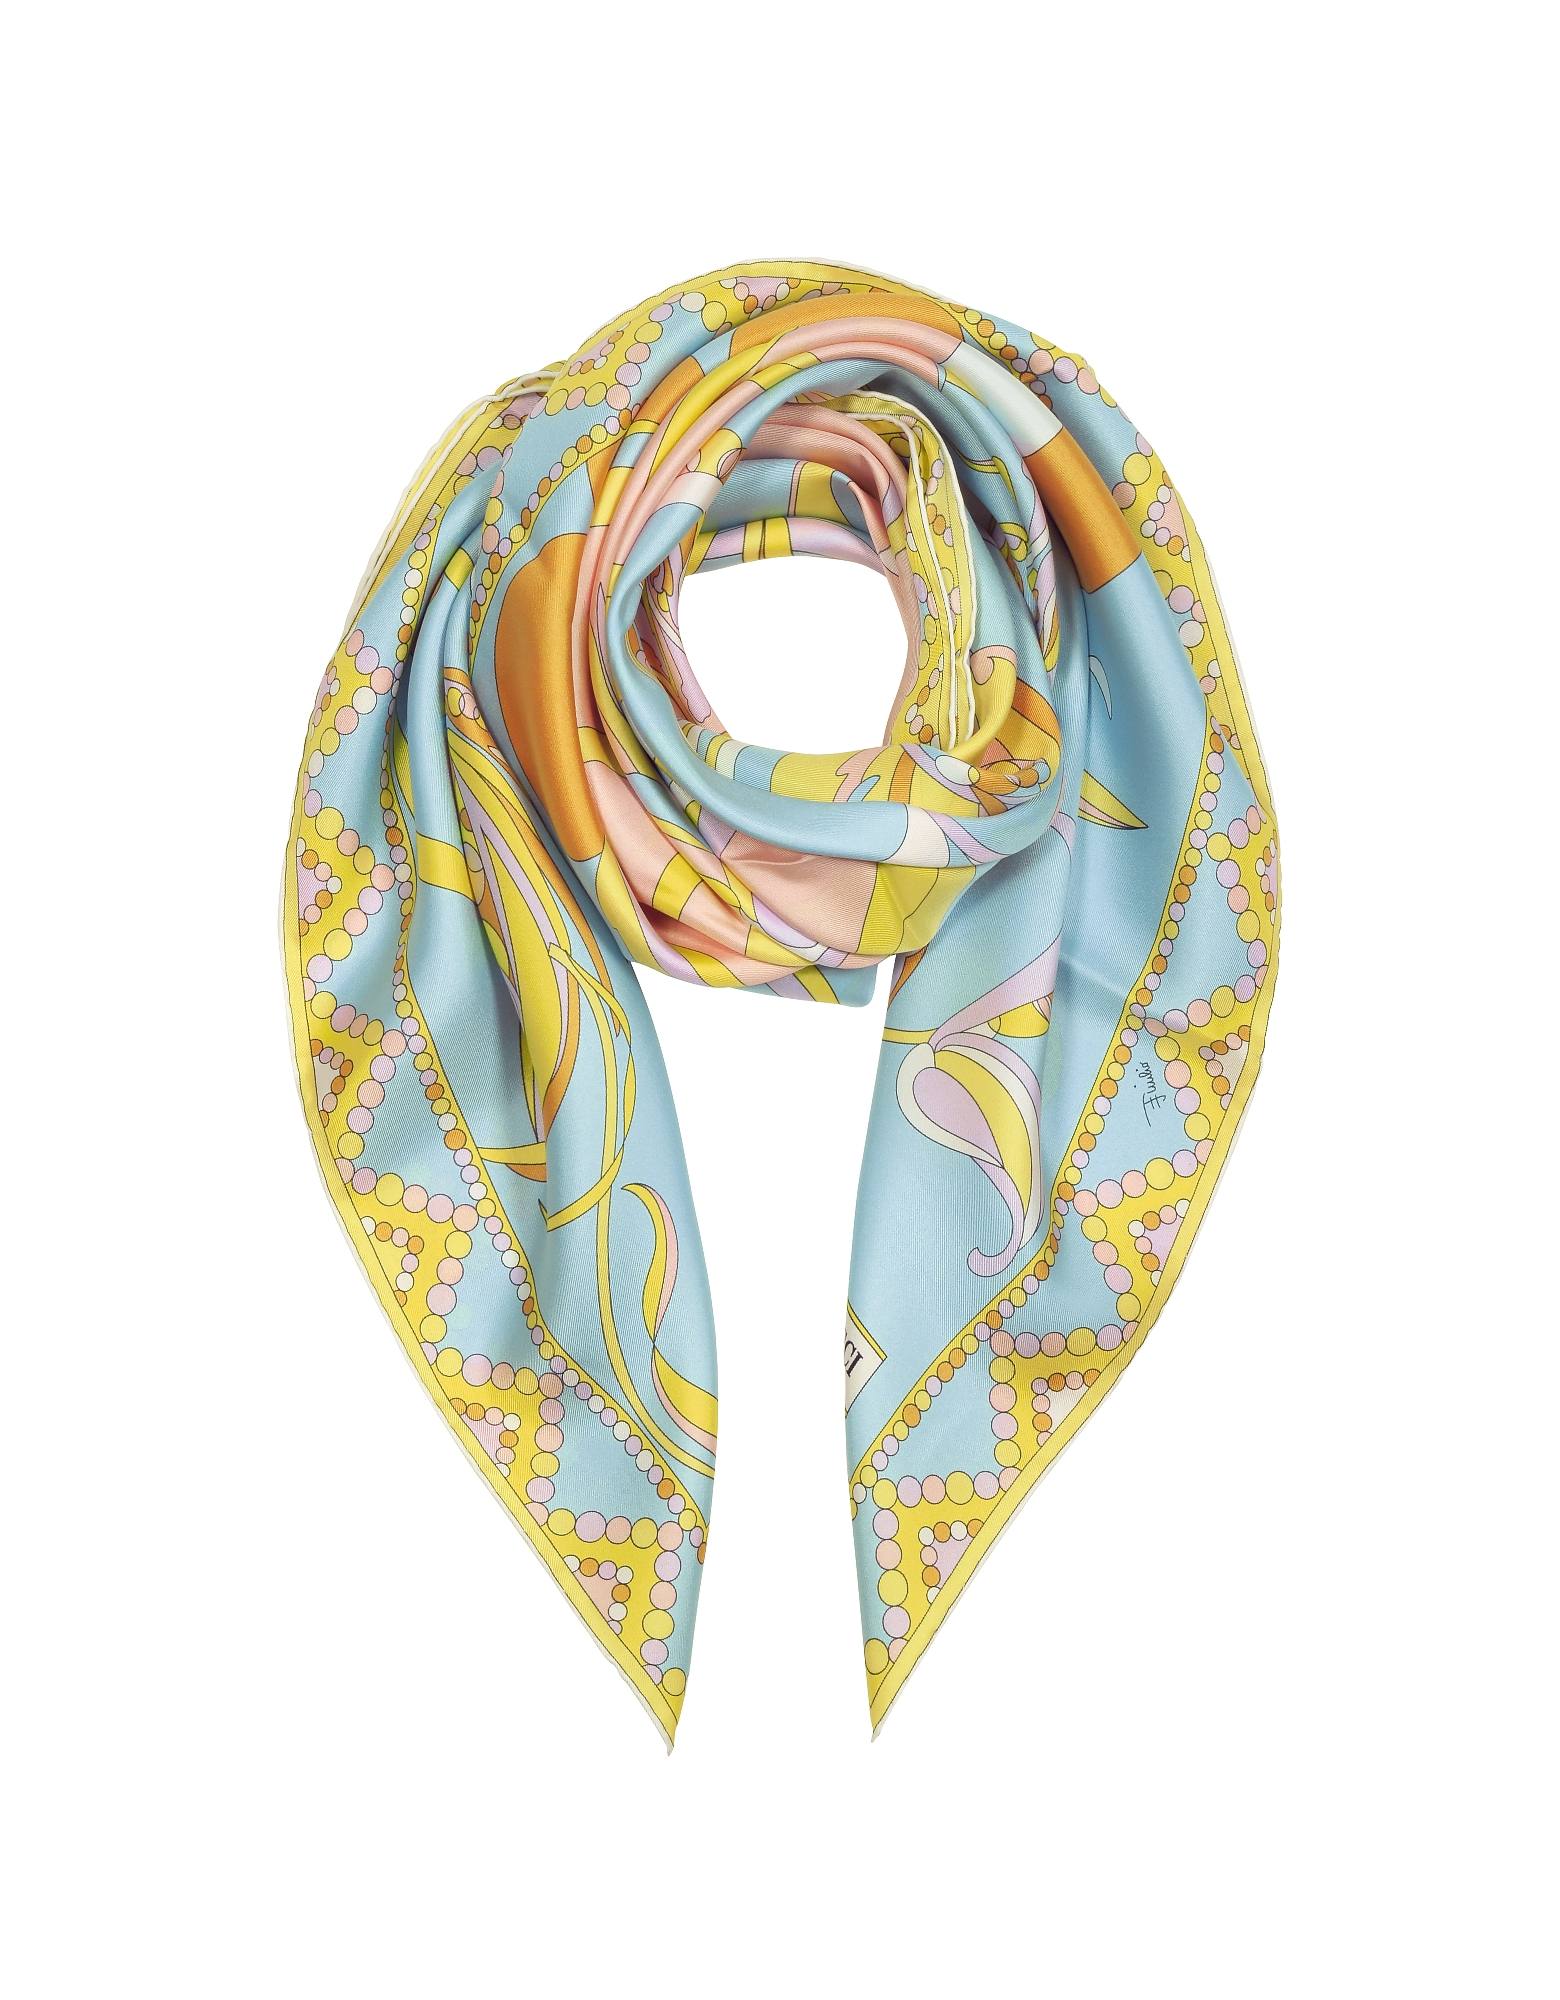 Emilio Pucci Square Scarves, Light Blue Floral Print Twill Silk Square Scarf